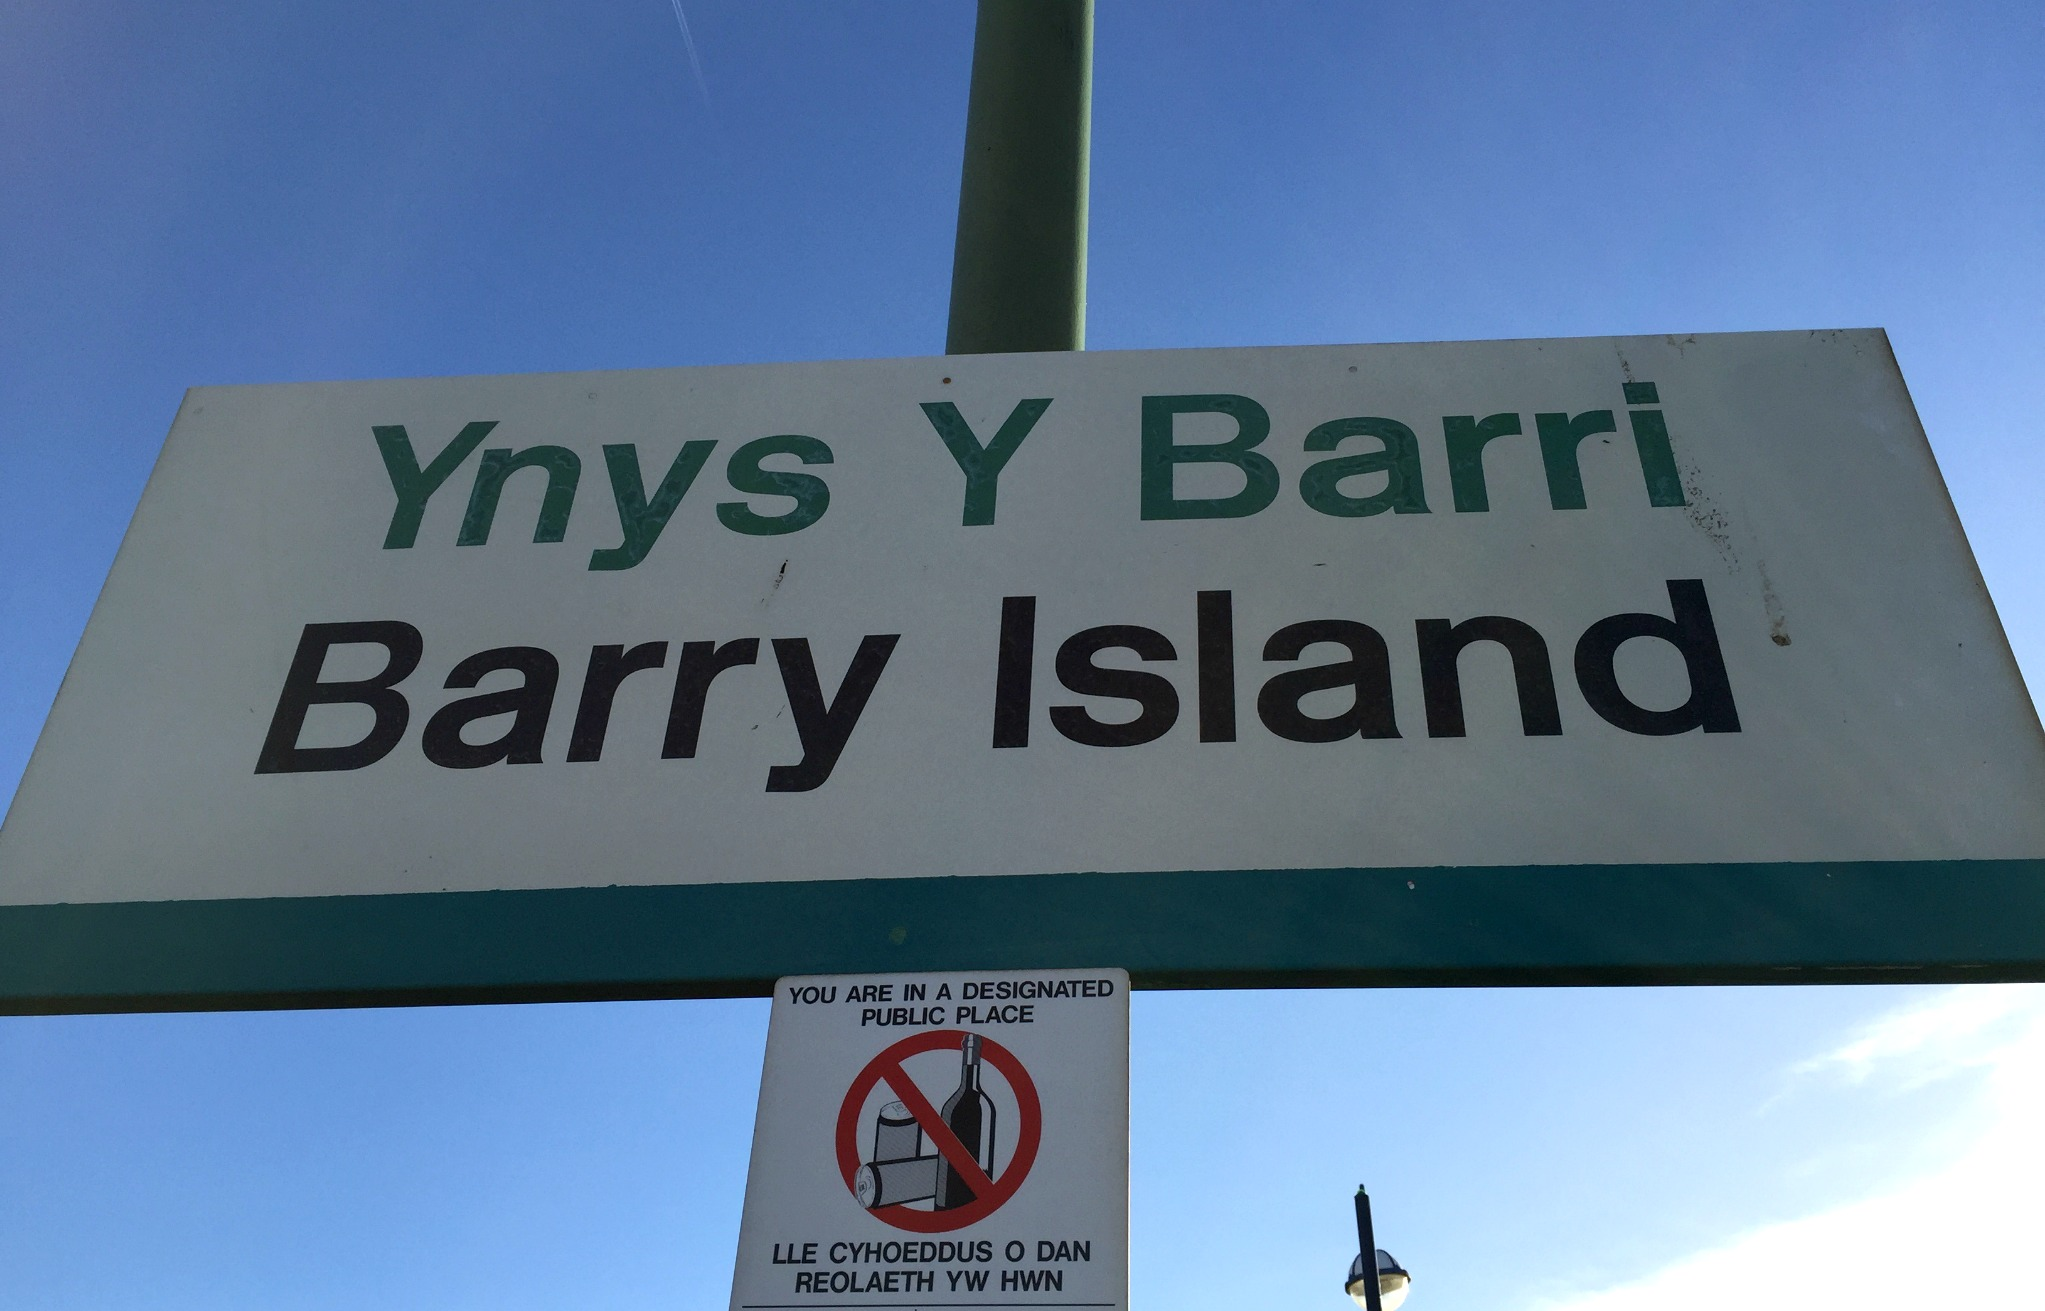 Cardiff To Barry Island Train Times